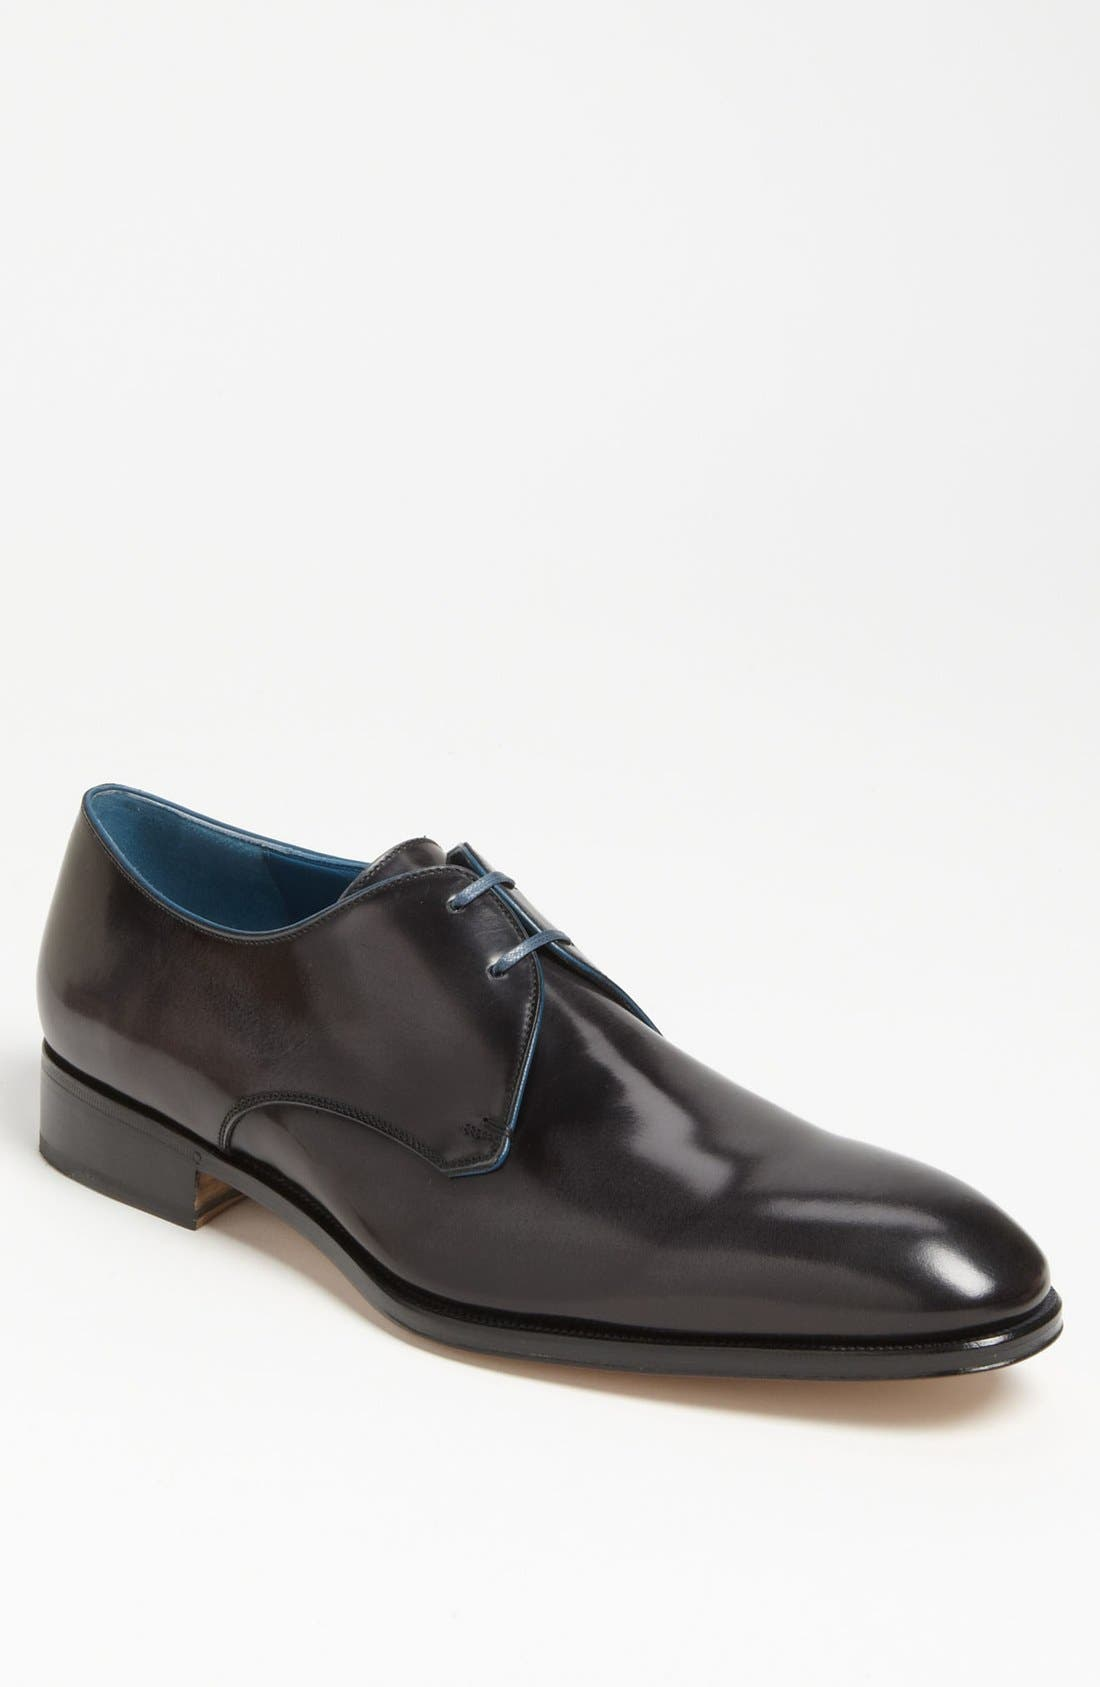 Alternate Image 1 Selected - Salvatore Ferragamo 'Tucker' Plain Toe Derby